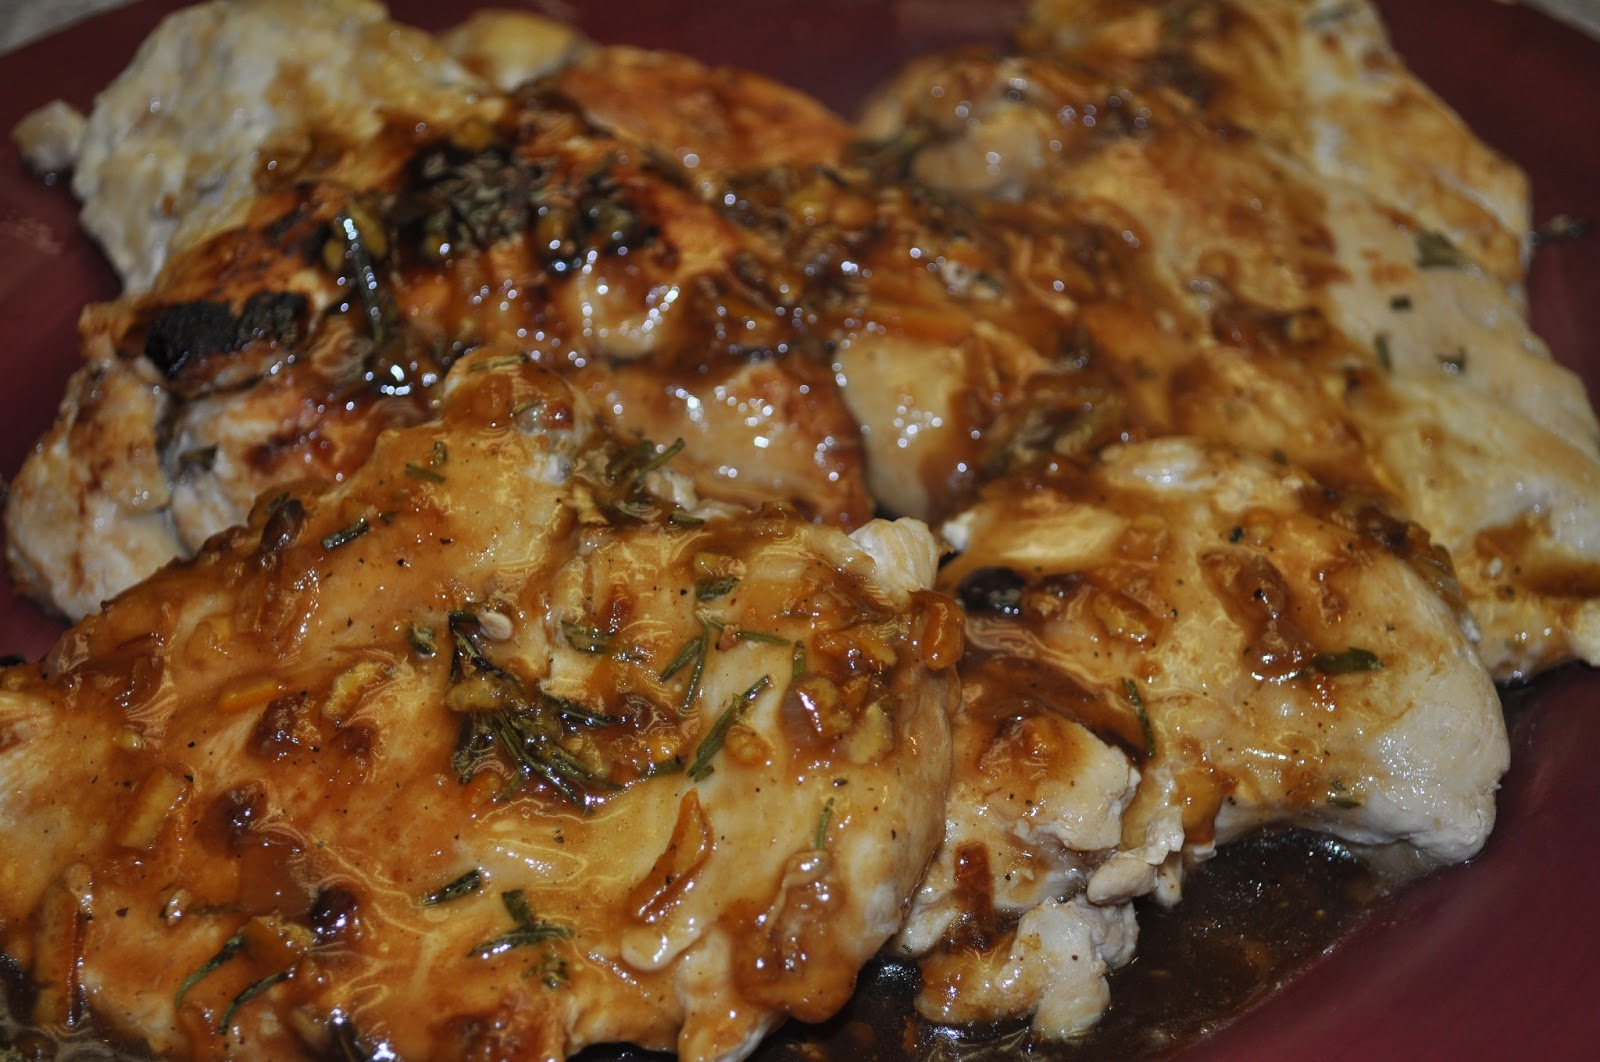 Beth's Favorite Recipes: Orange Balsamic Chicken